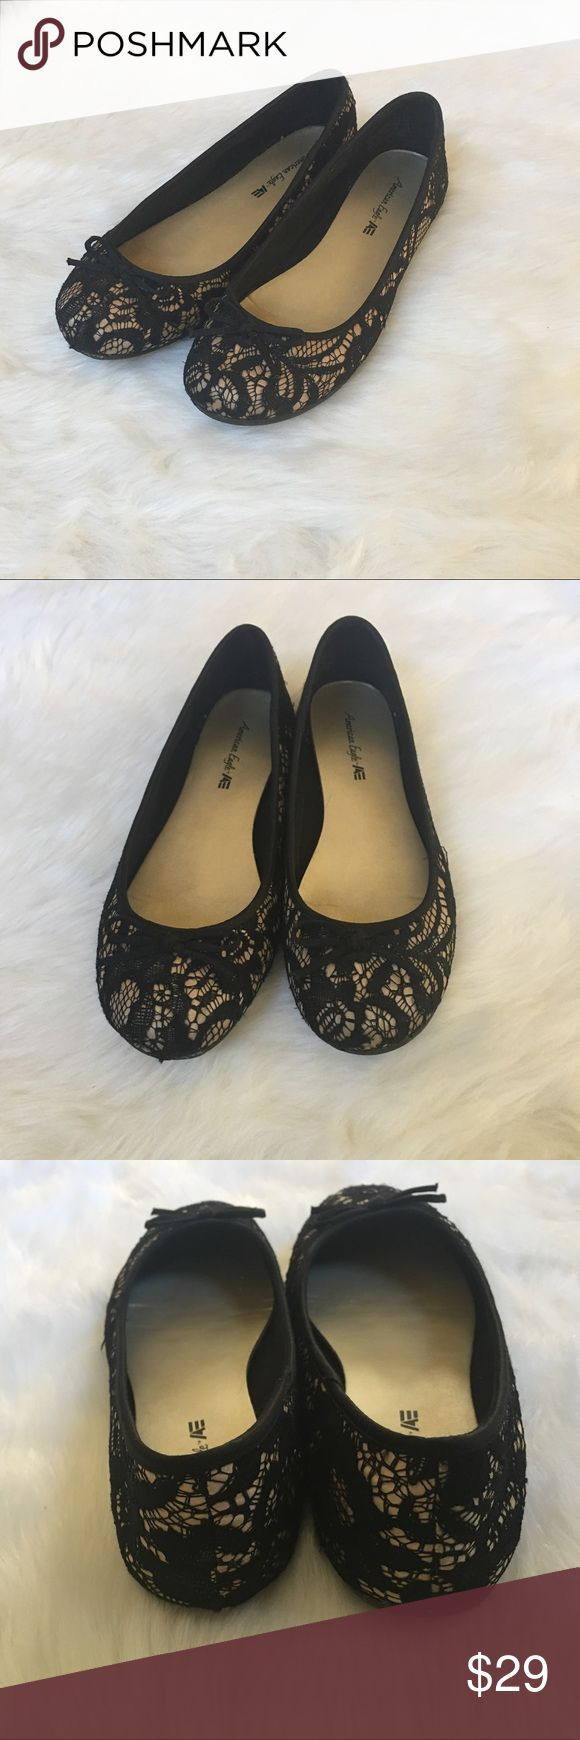 🆕American Eagle Lace Flats I do my best to describe and photograph all my items in full detail, flaws and no filters, although I try to remove any background noise. That does not affect the item for sale. GRADING: NWT/NWOT: Brand new. Item has never been worn. 10/10: Like new. Item has only been worn once or twice. Very gently used. 9/10: Excellent. Item has been worn but there is very minor overall wear. No significant flaws. Please view photos regarding care. American Eagle Outfitters…